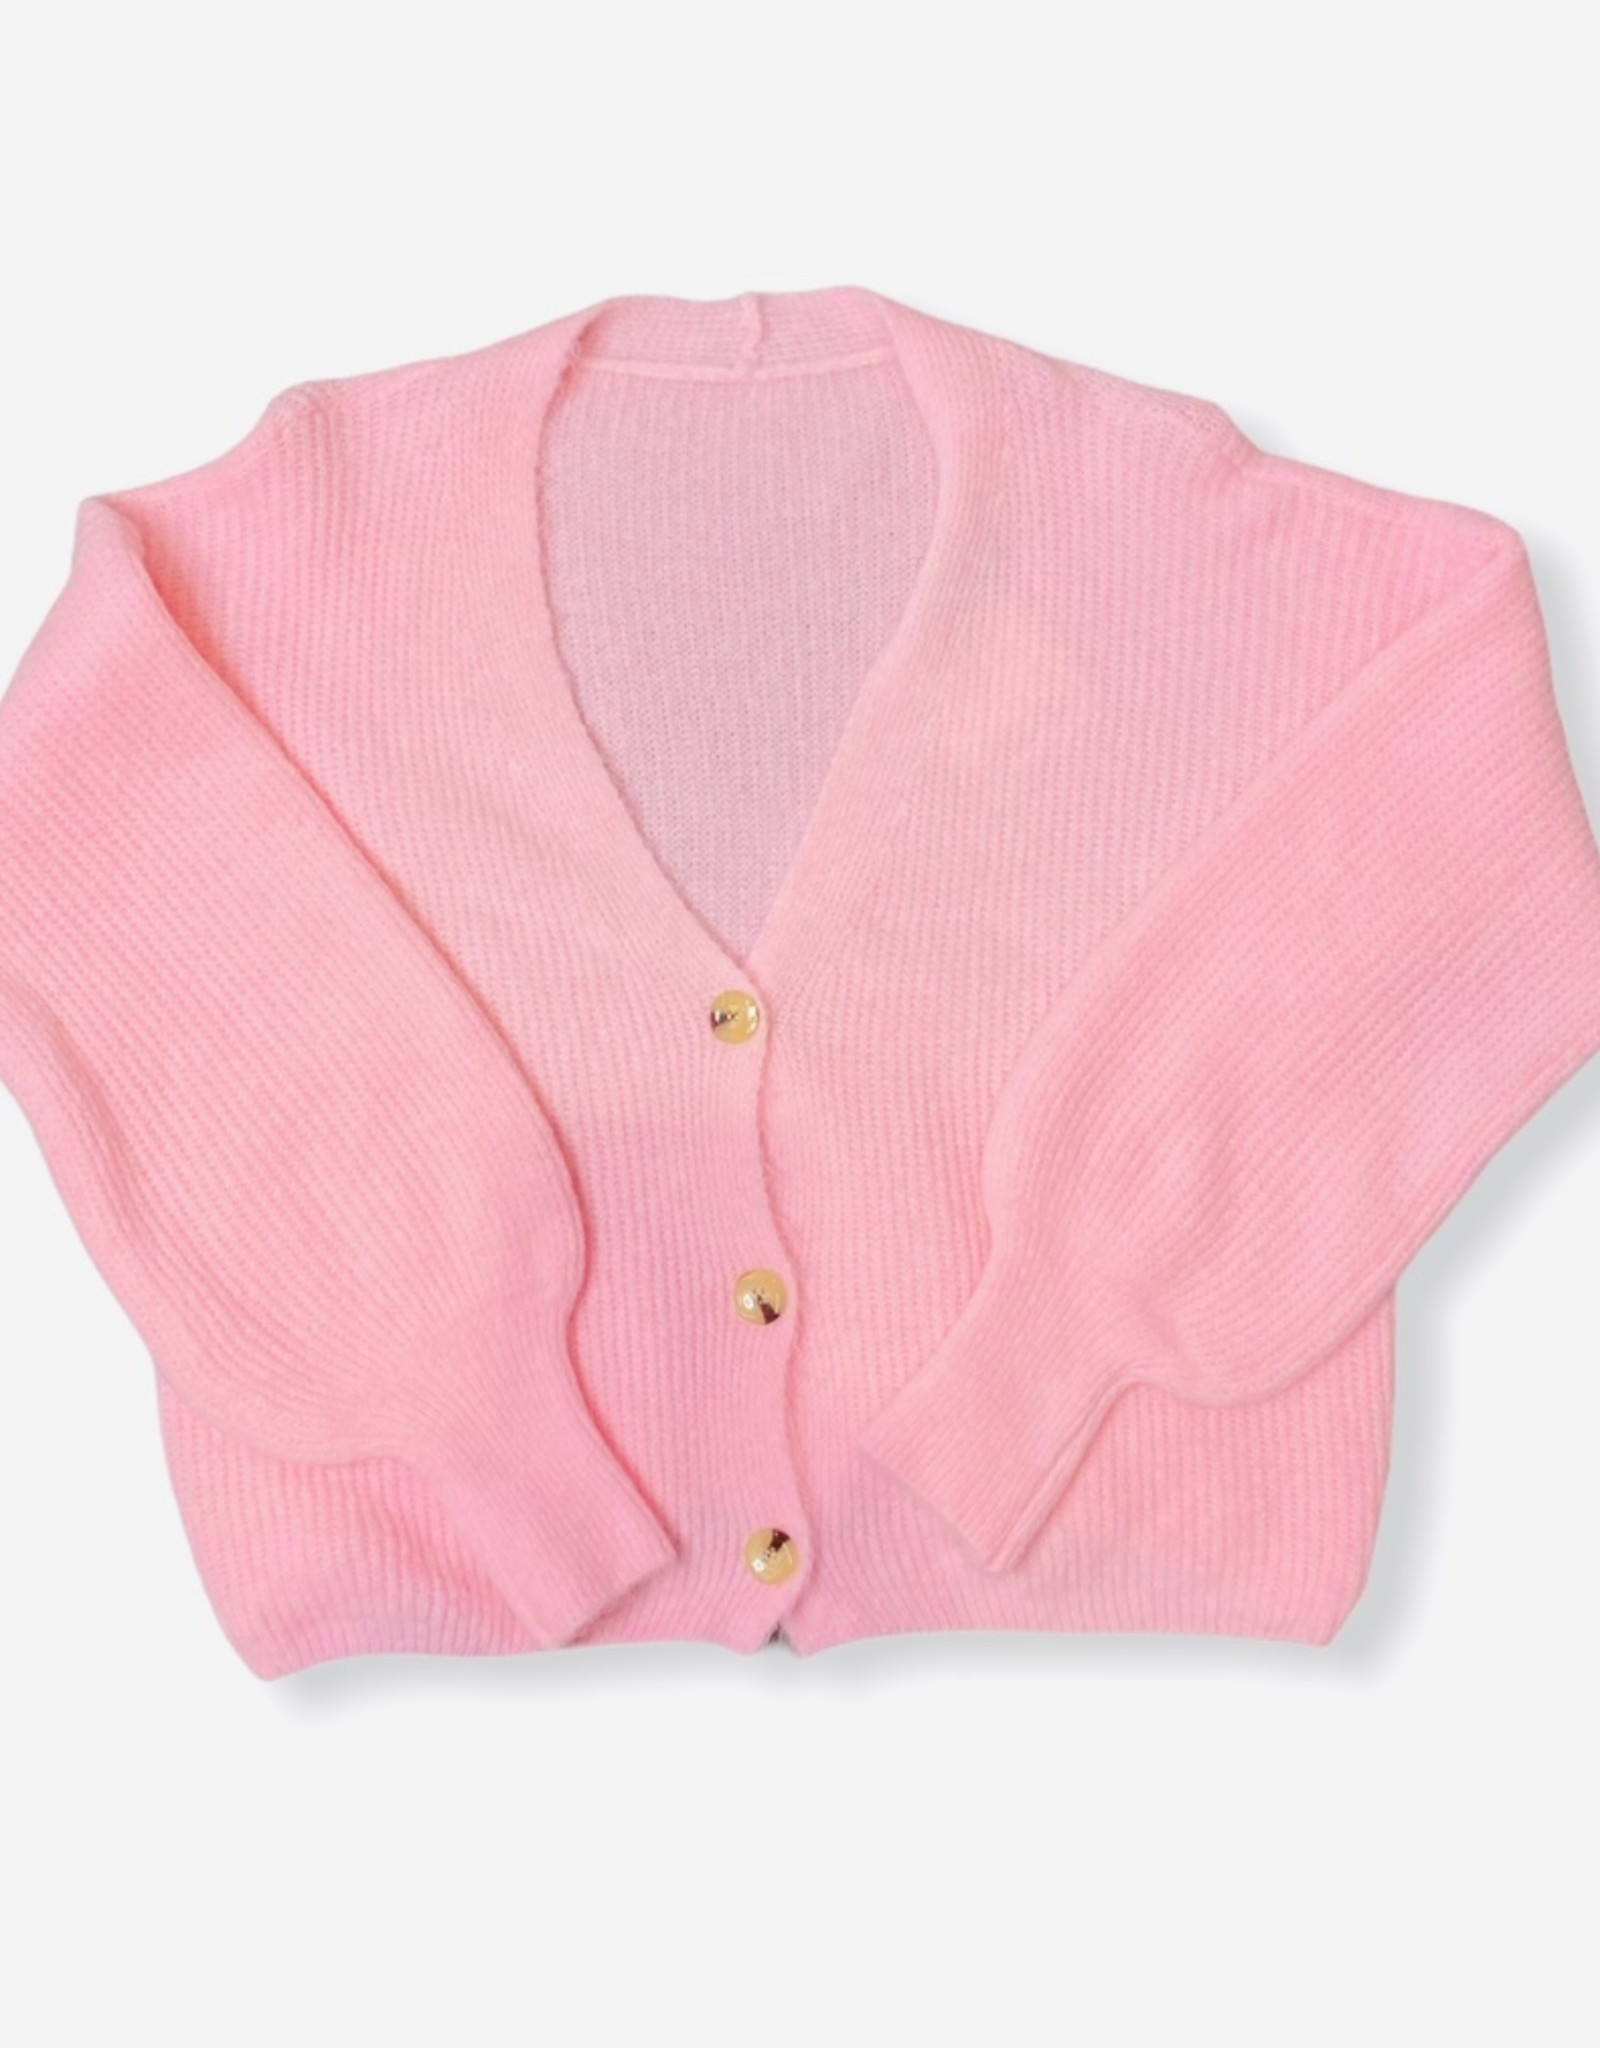 NEW IN Vest Billy pink